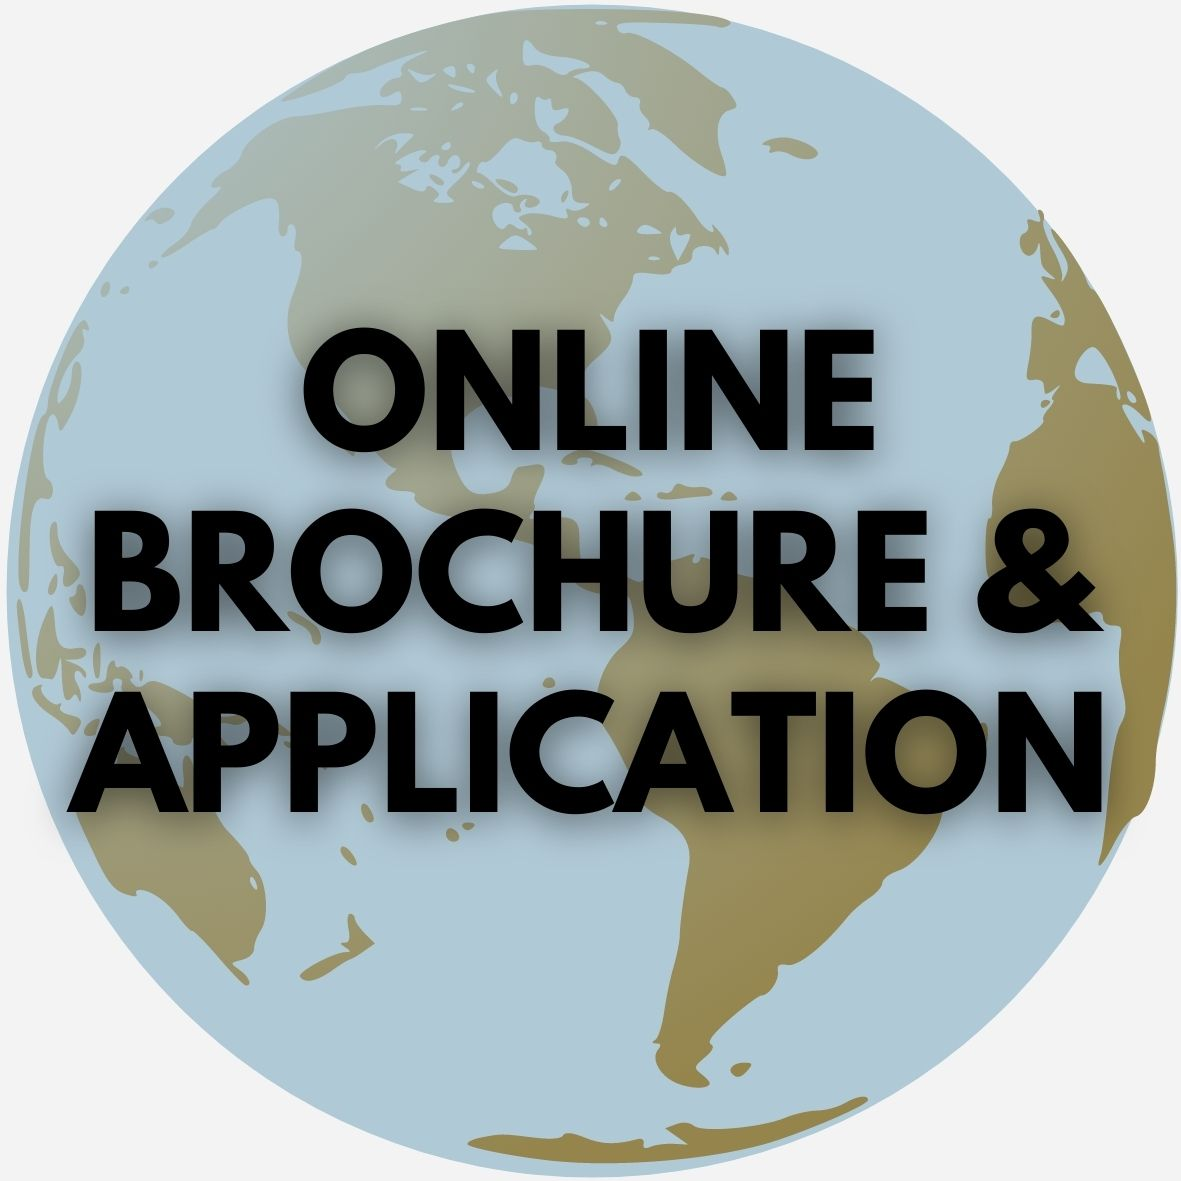 Online brochure & application button